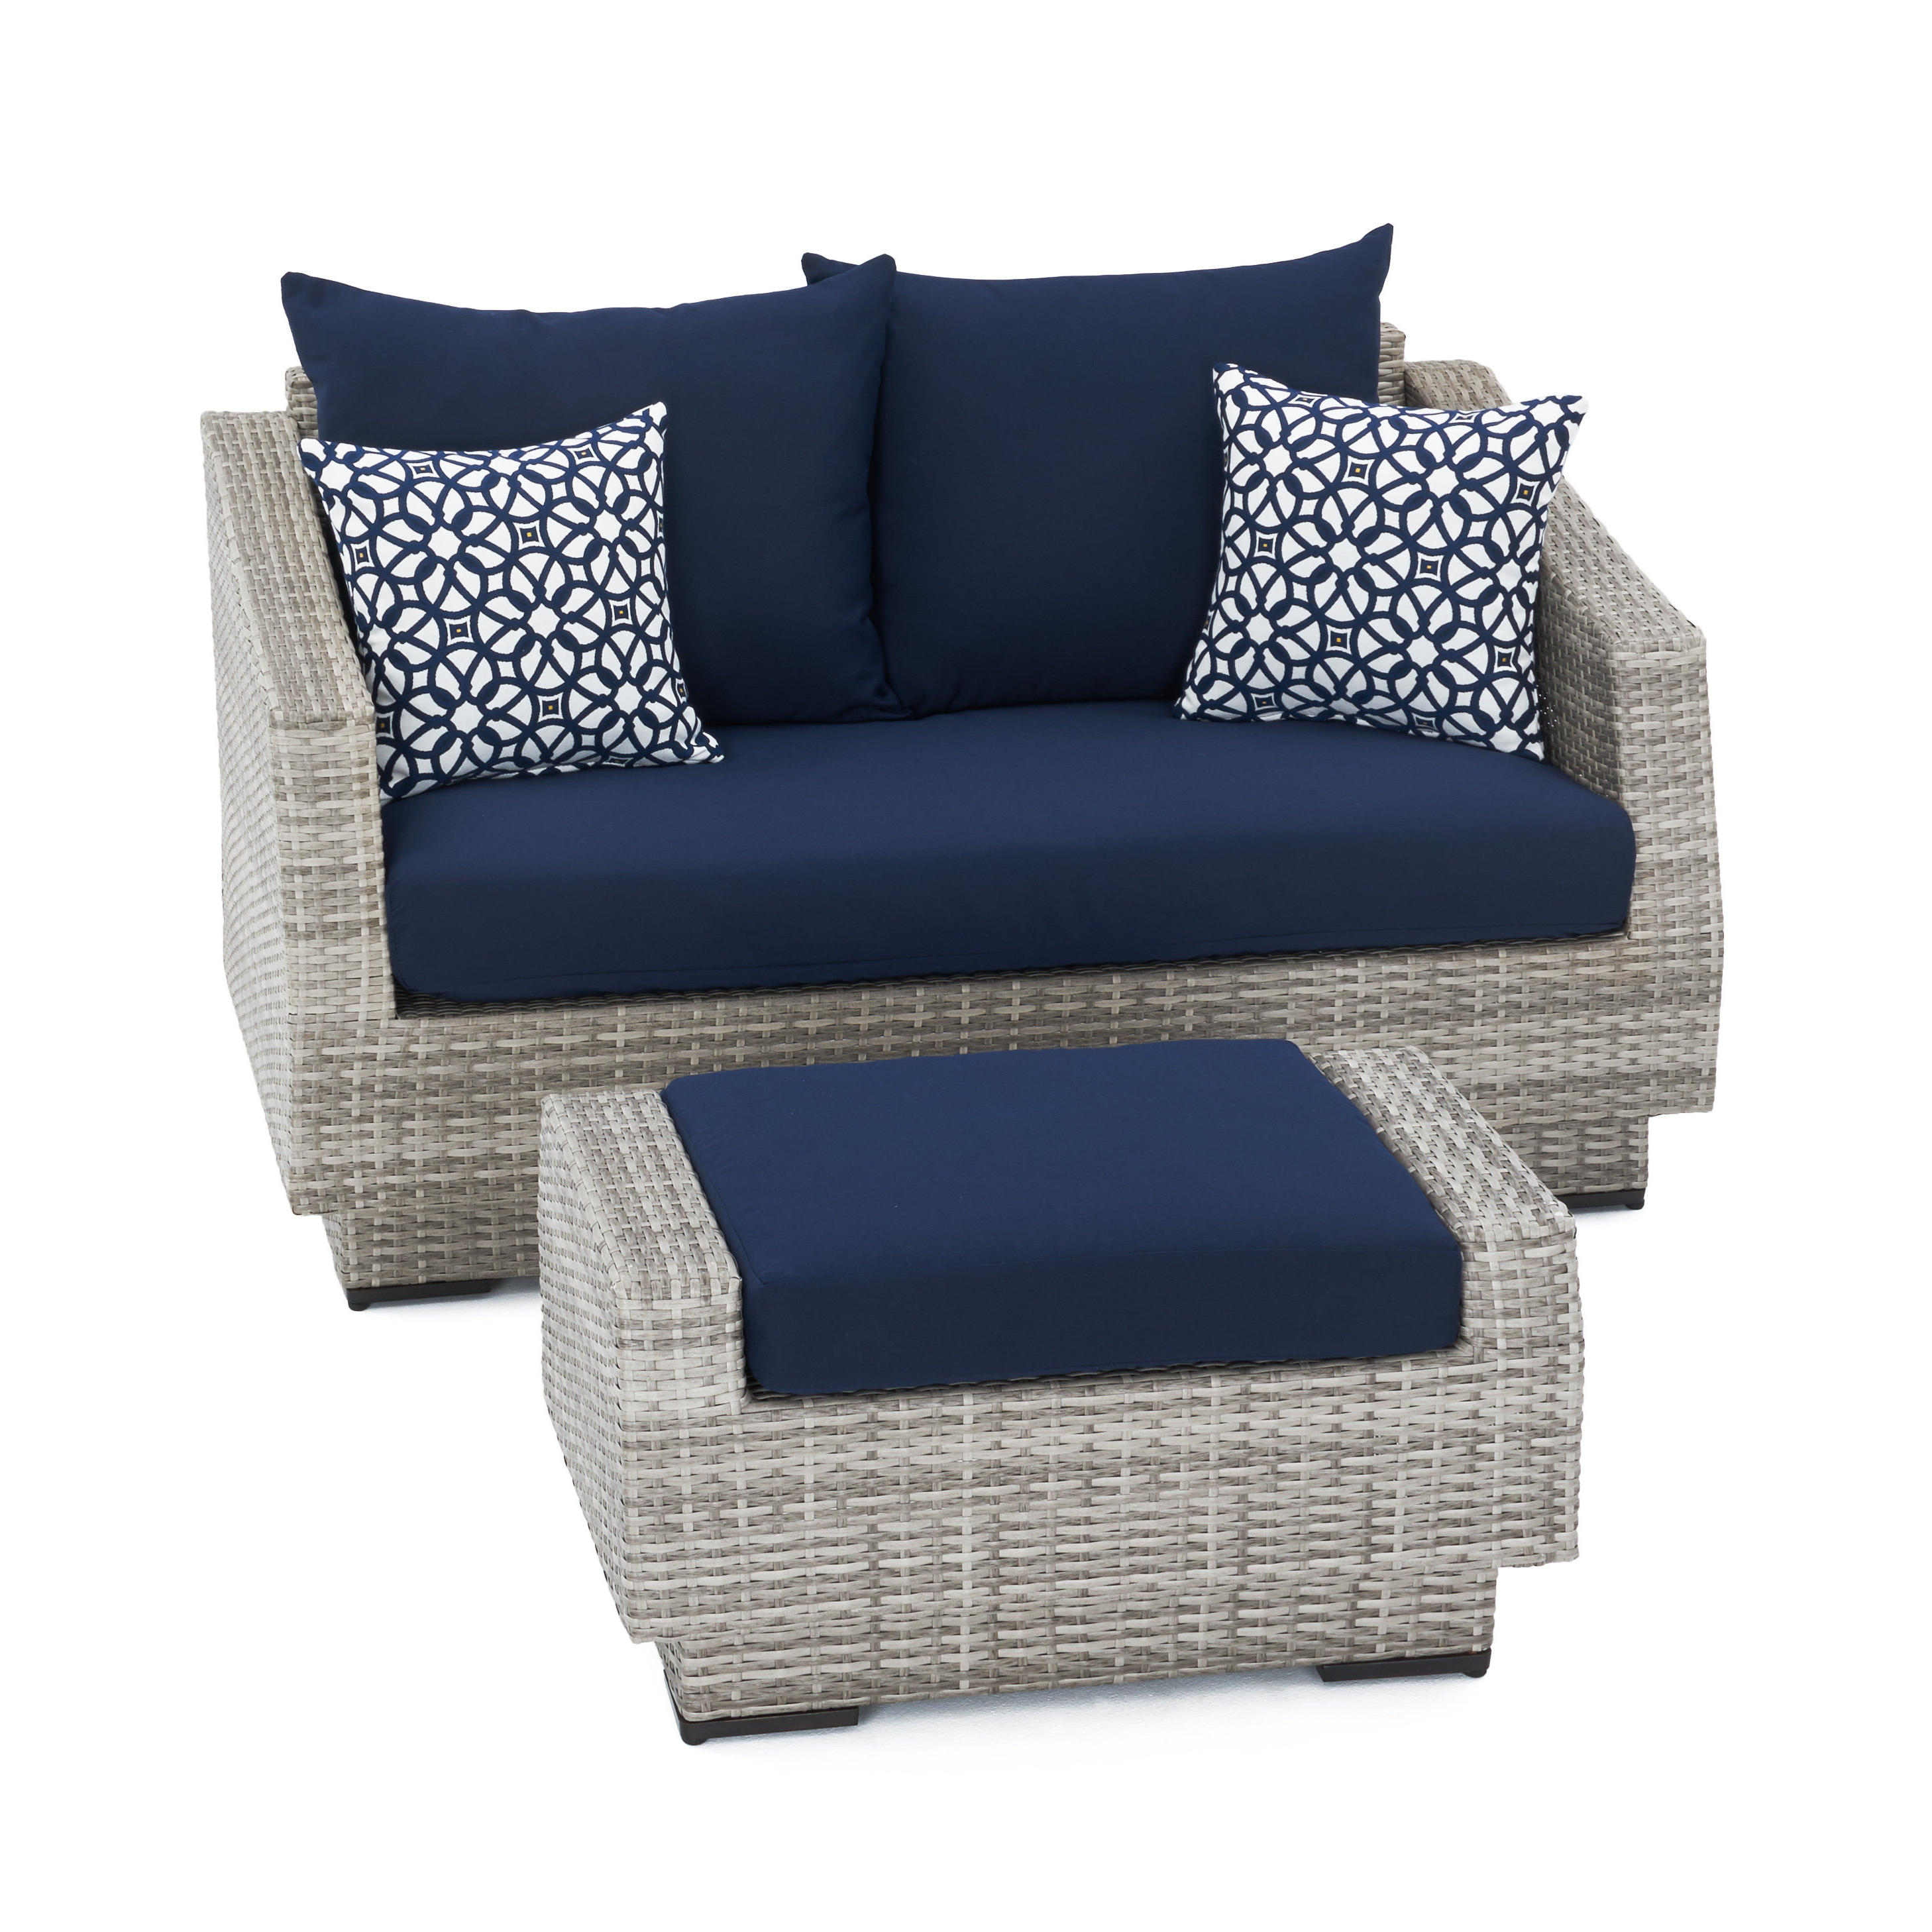 Falmouth Loveseats With Cushions With Regard To Latest Castelli Loveseat With Cushions (View 8 of 20)